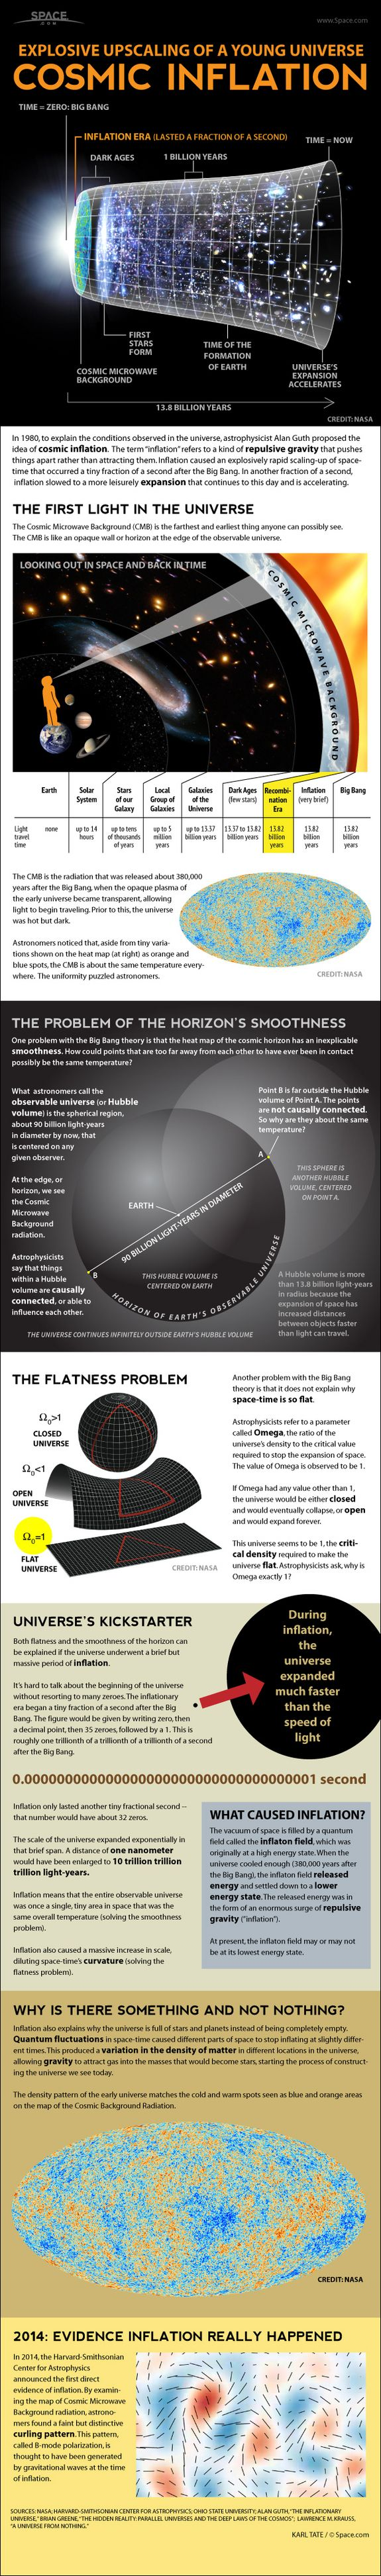 Cosmic Inflation: How It Gave the Universe the Ultimate Kickstart (Infographic) By Karl Tate, Infographics Artist   |   March 17, 2014